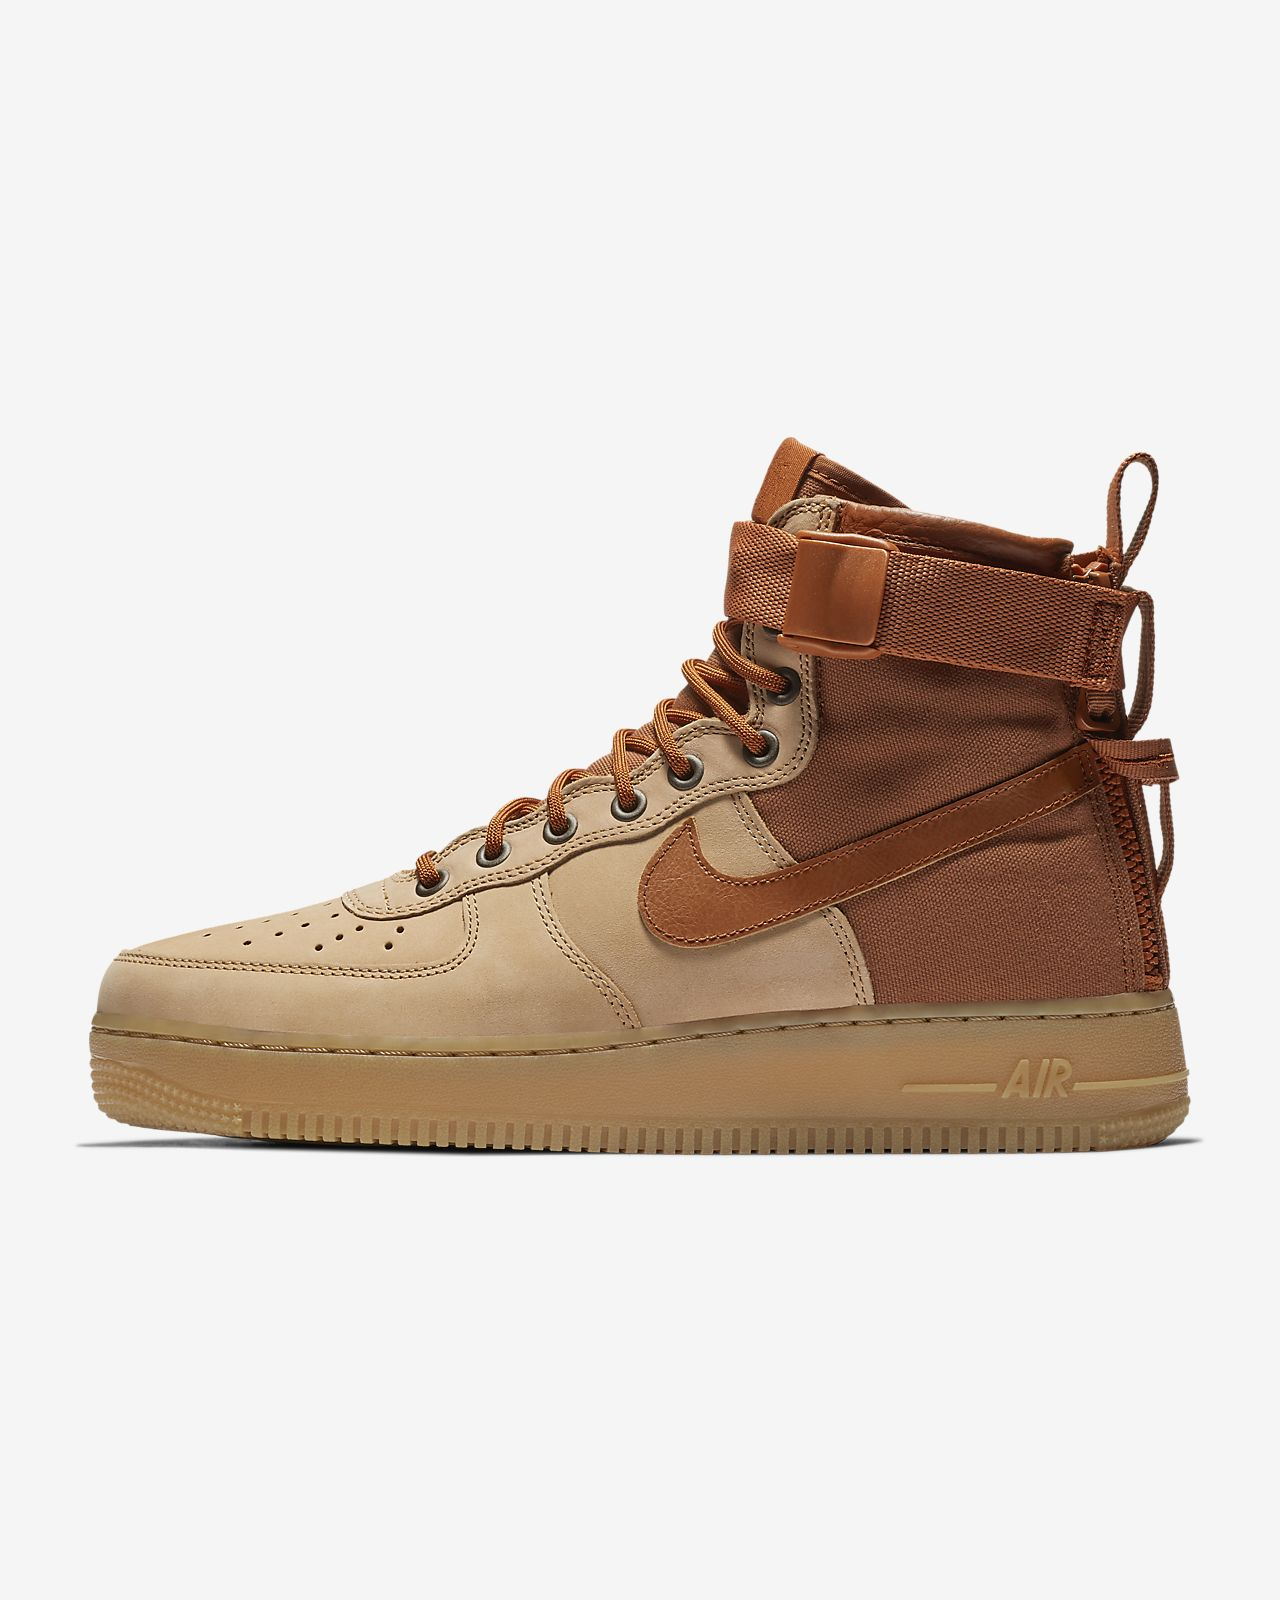 a39ef8f073e Chaussure Nike SF Air Force 1 Mid Premium pour Homme. Nike.com FR